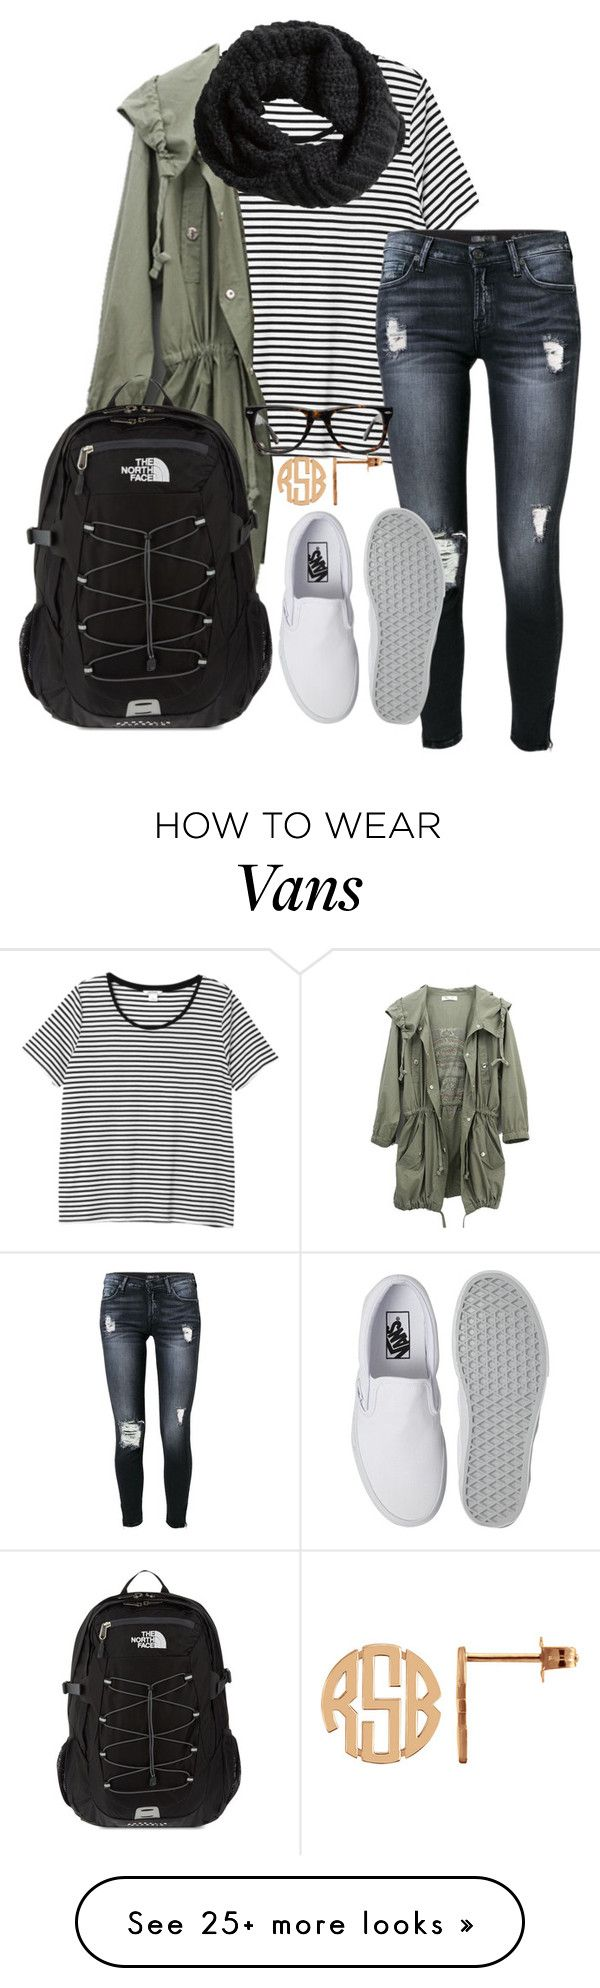 """""""School tomorrow"""" by ambermillard on Polyvore featuring Monki, 7 For All Mankind, Vans, The North Face, Muse, H&M, women's clothing, women, female and woman"""